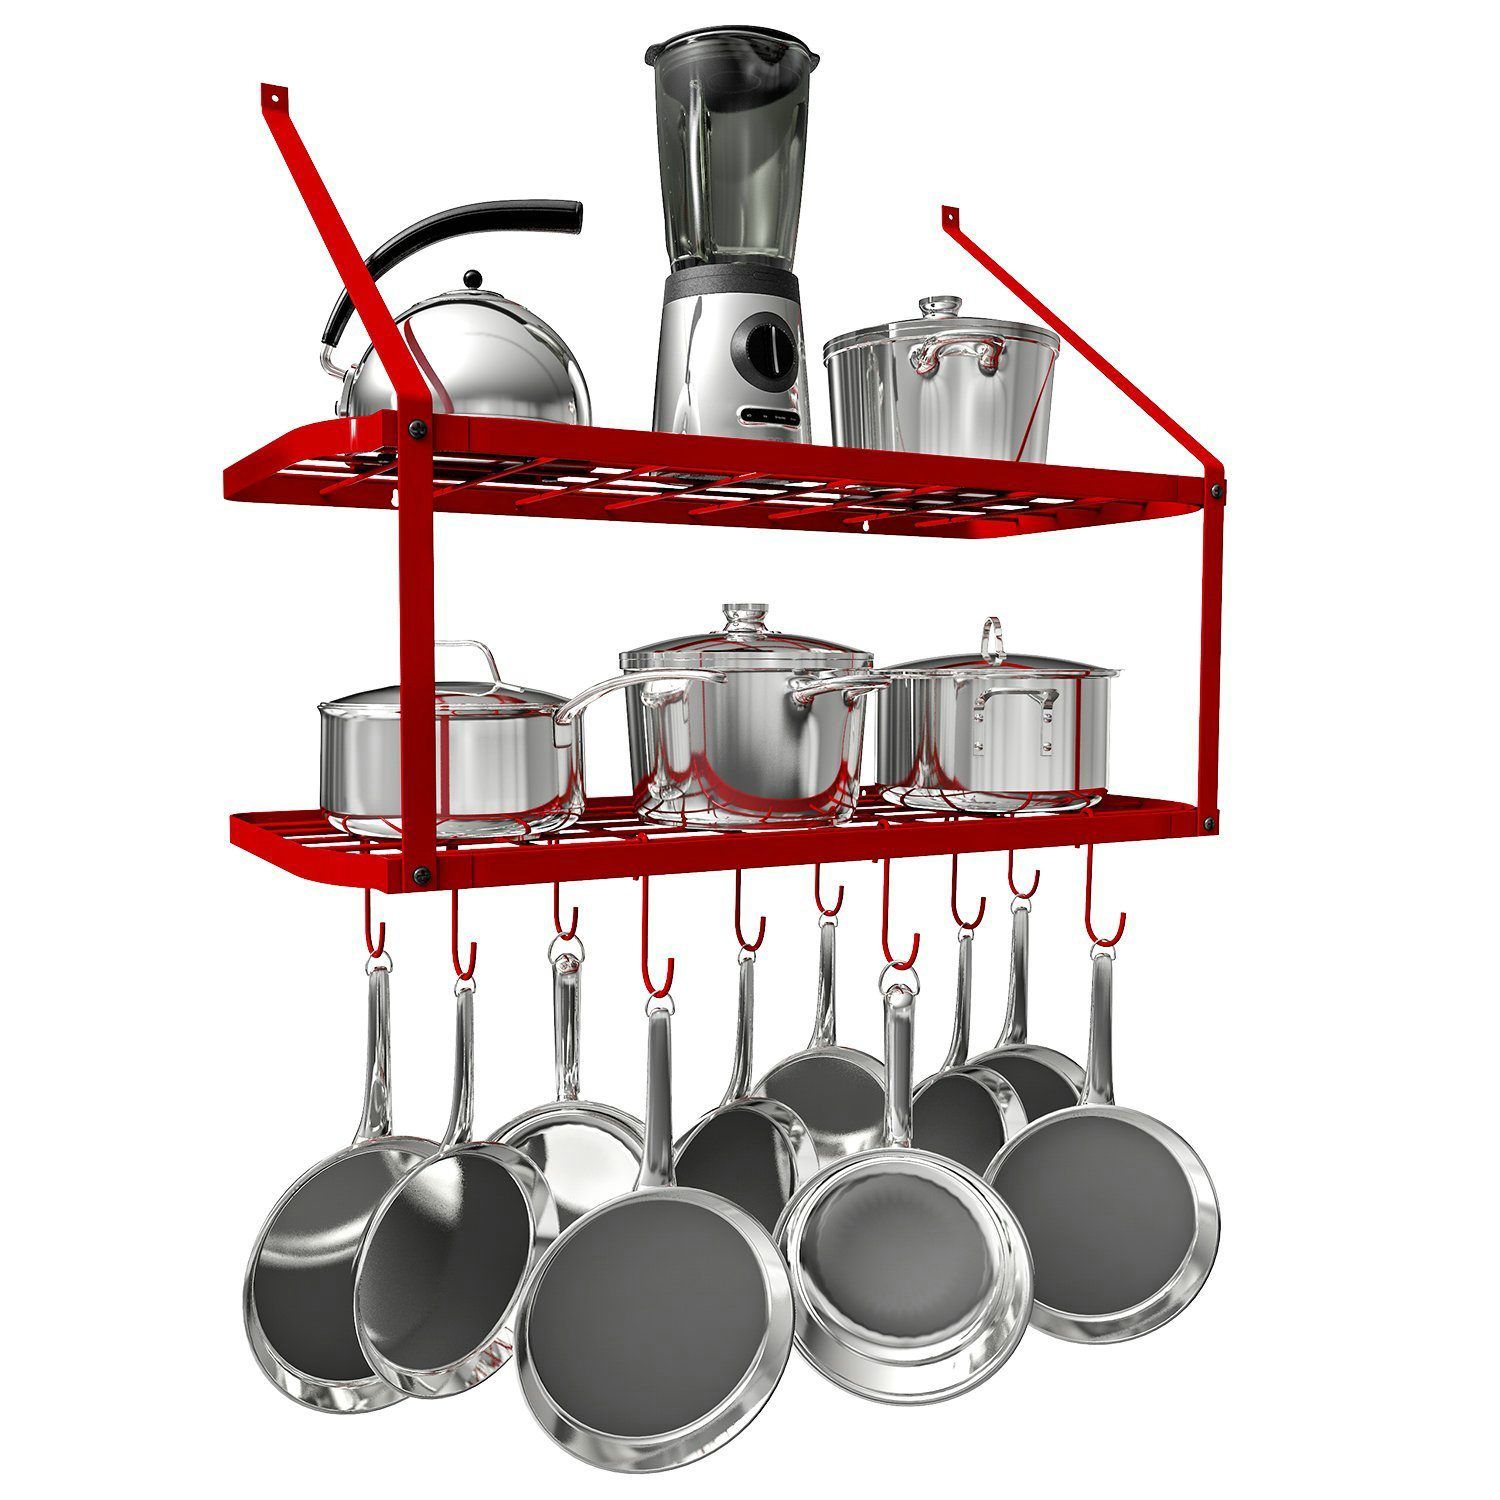 Wall Mounted Pots Vdomus Pots And Pans Rack Wall Mounted Hanging Pot Shelf